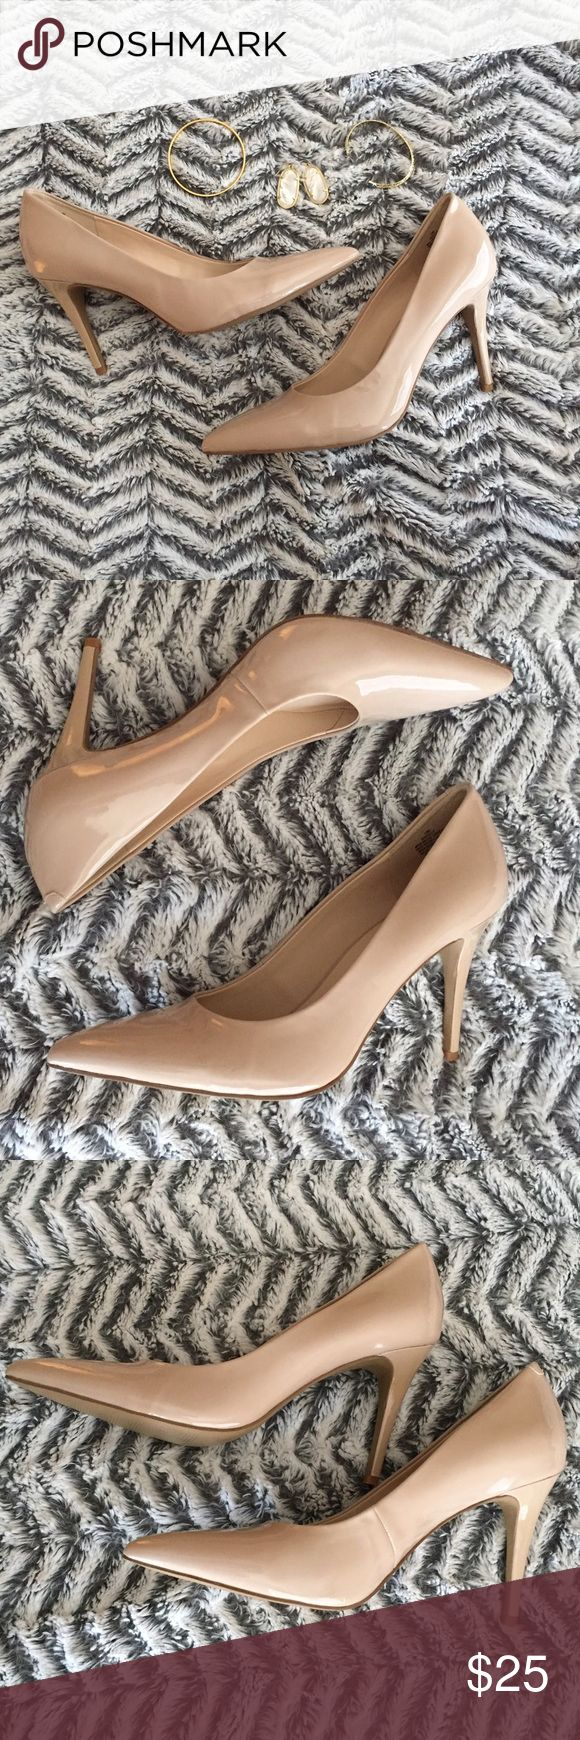 NWT Nine West Heels NWT Nine West Heels in nude. Never worn- new with tags. These match EVERYTHING! I hurt my foot and I can't wear heels anymore. Hoping someone can wear these! 💰SAVE 15% with a bundle of 3 or more!💰Serious offers accepted ✅ Nine West Shoes Heels